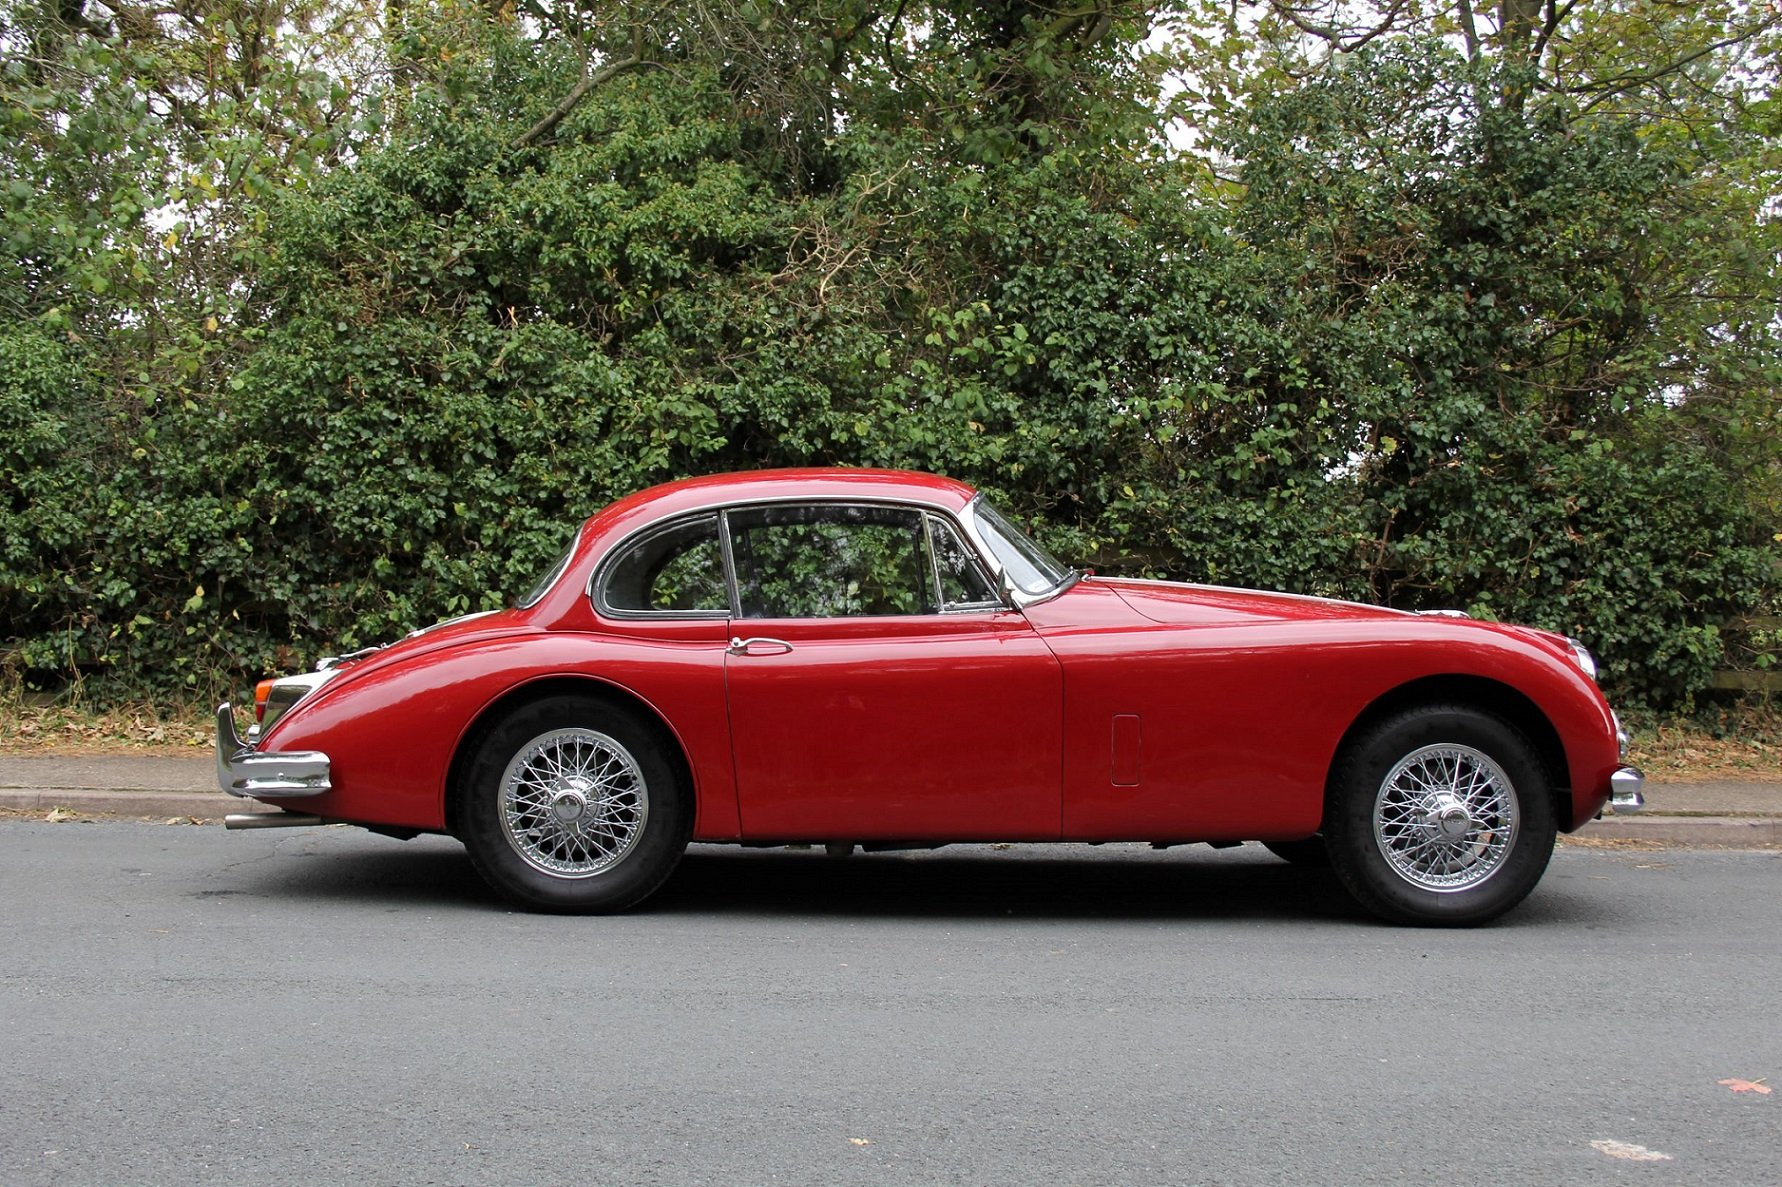 1960 Jaguar XK150 3.8 FHC - UK car, special order Pippen Red SOLD (picture 6 of 12)